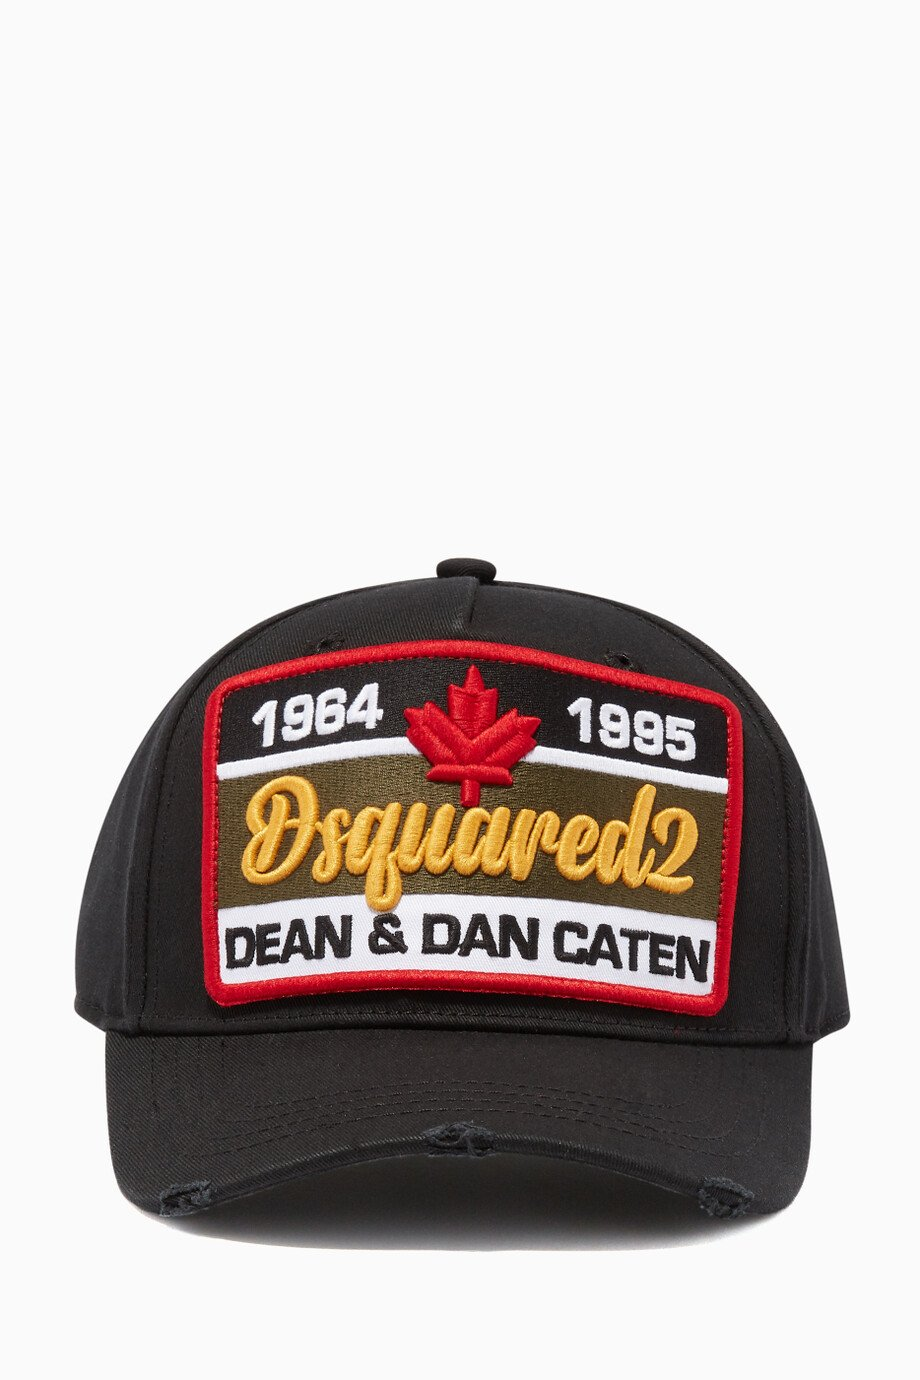 b431191cb Shop Dsquared2 Black Black & Red Canadian Brothers Baseball Cap ...